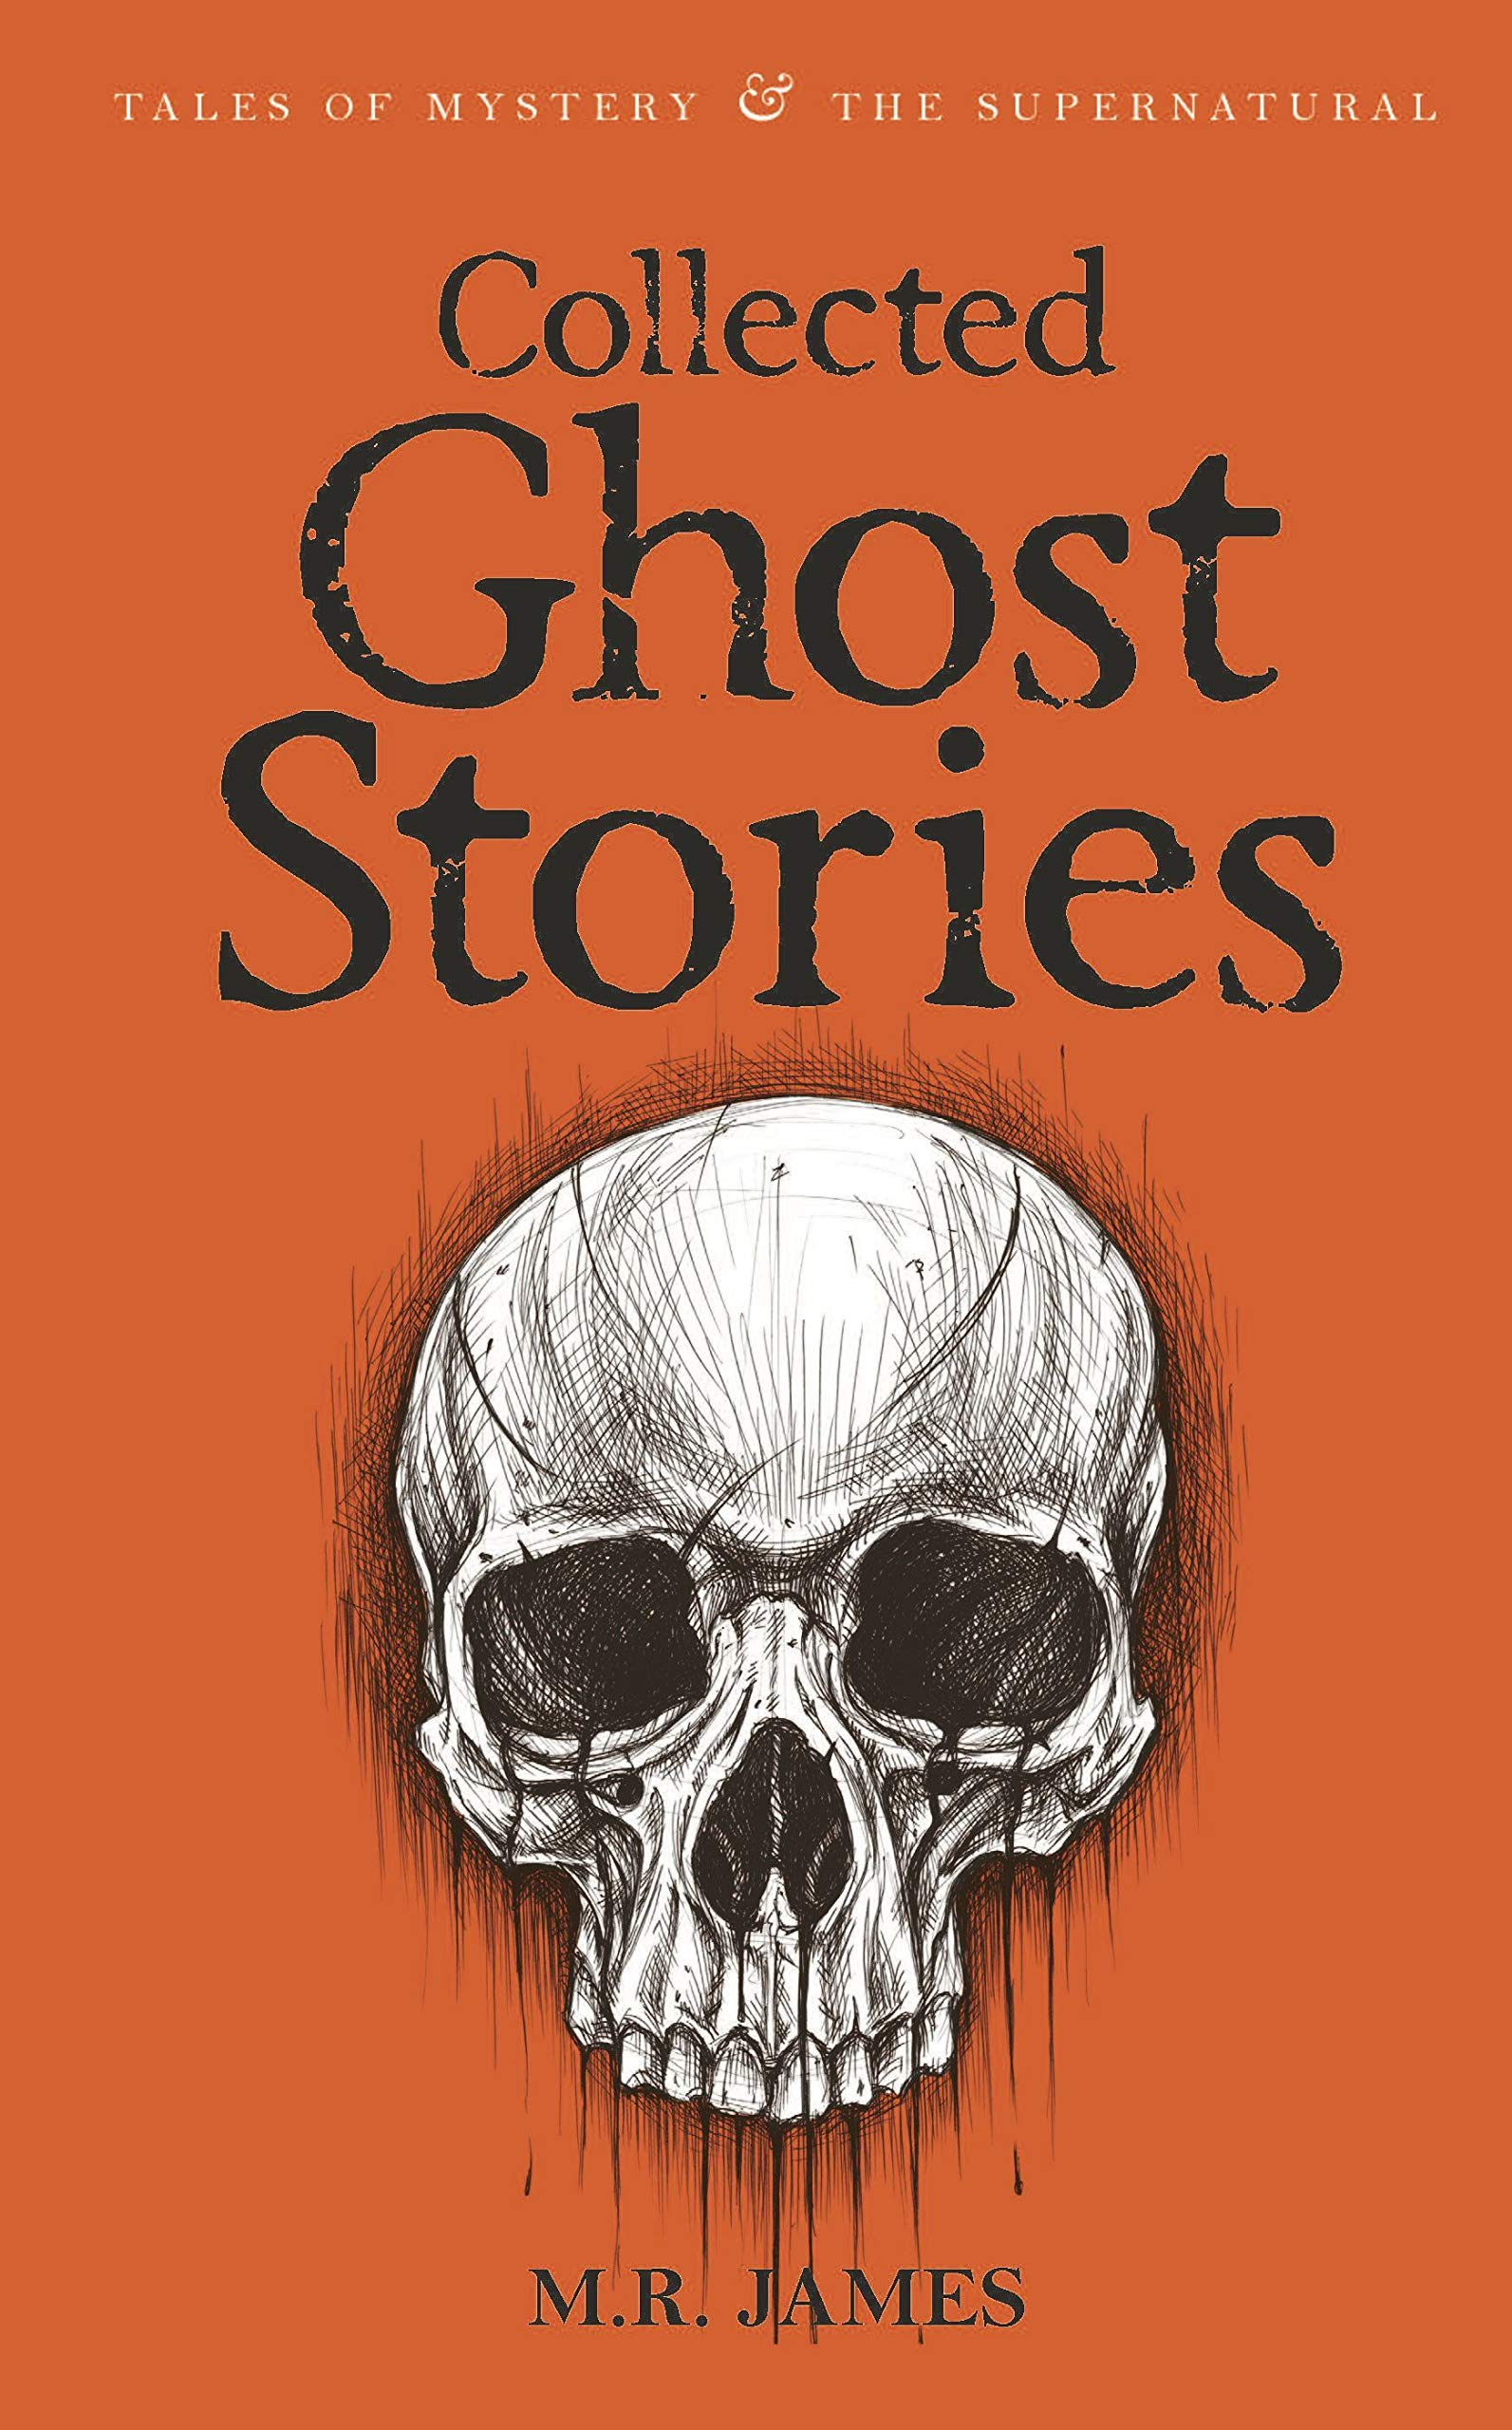 Collected Ghost Stories (Tales of Mystery & the Supernatural) ebook